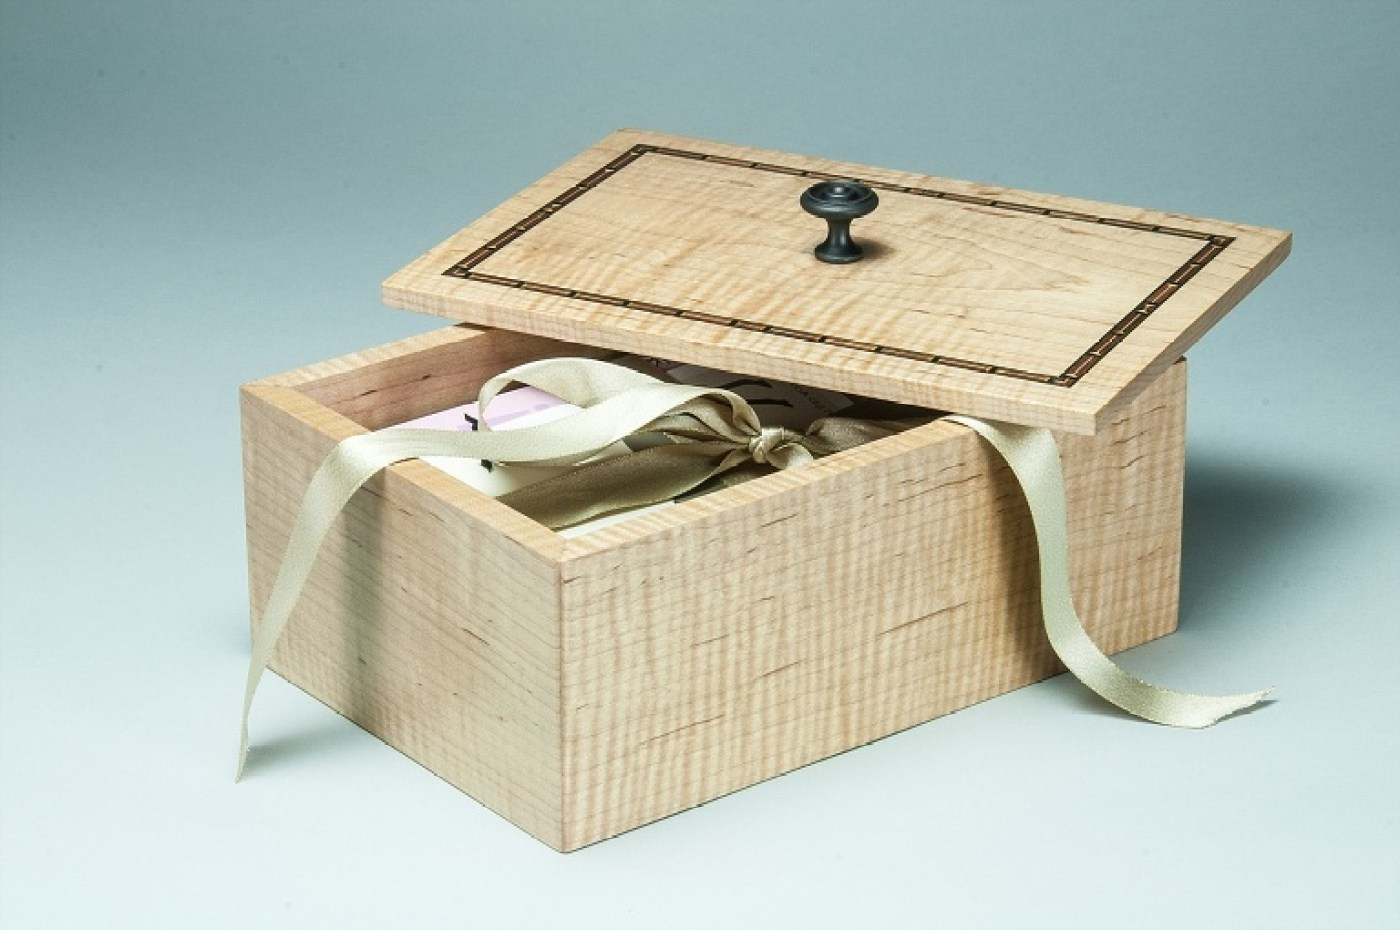 inlaid maple keepsake box for cards and momentos   Heller and Heller Furniture